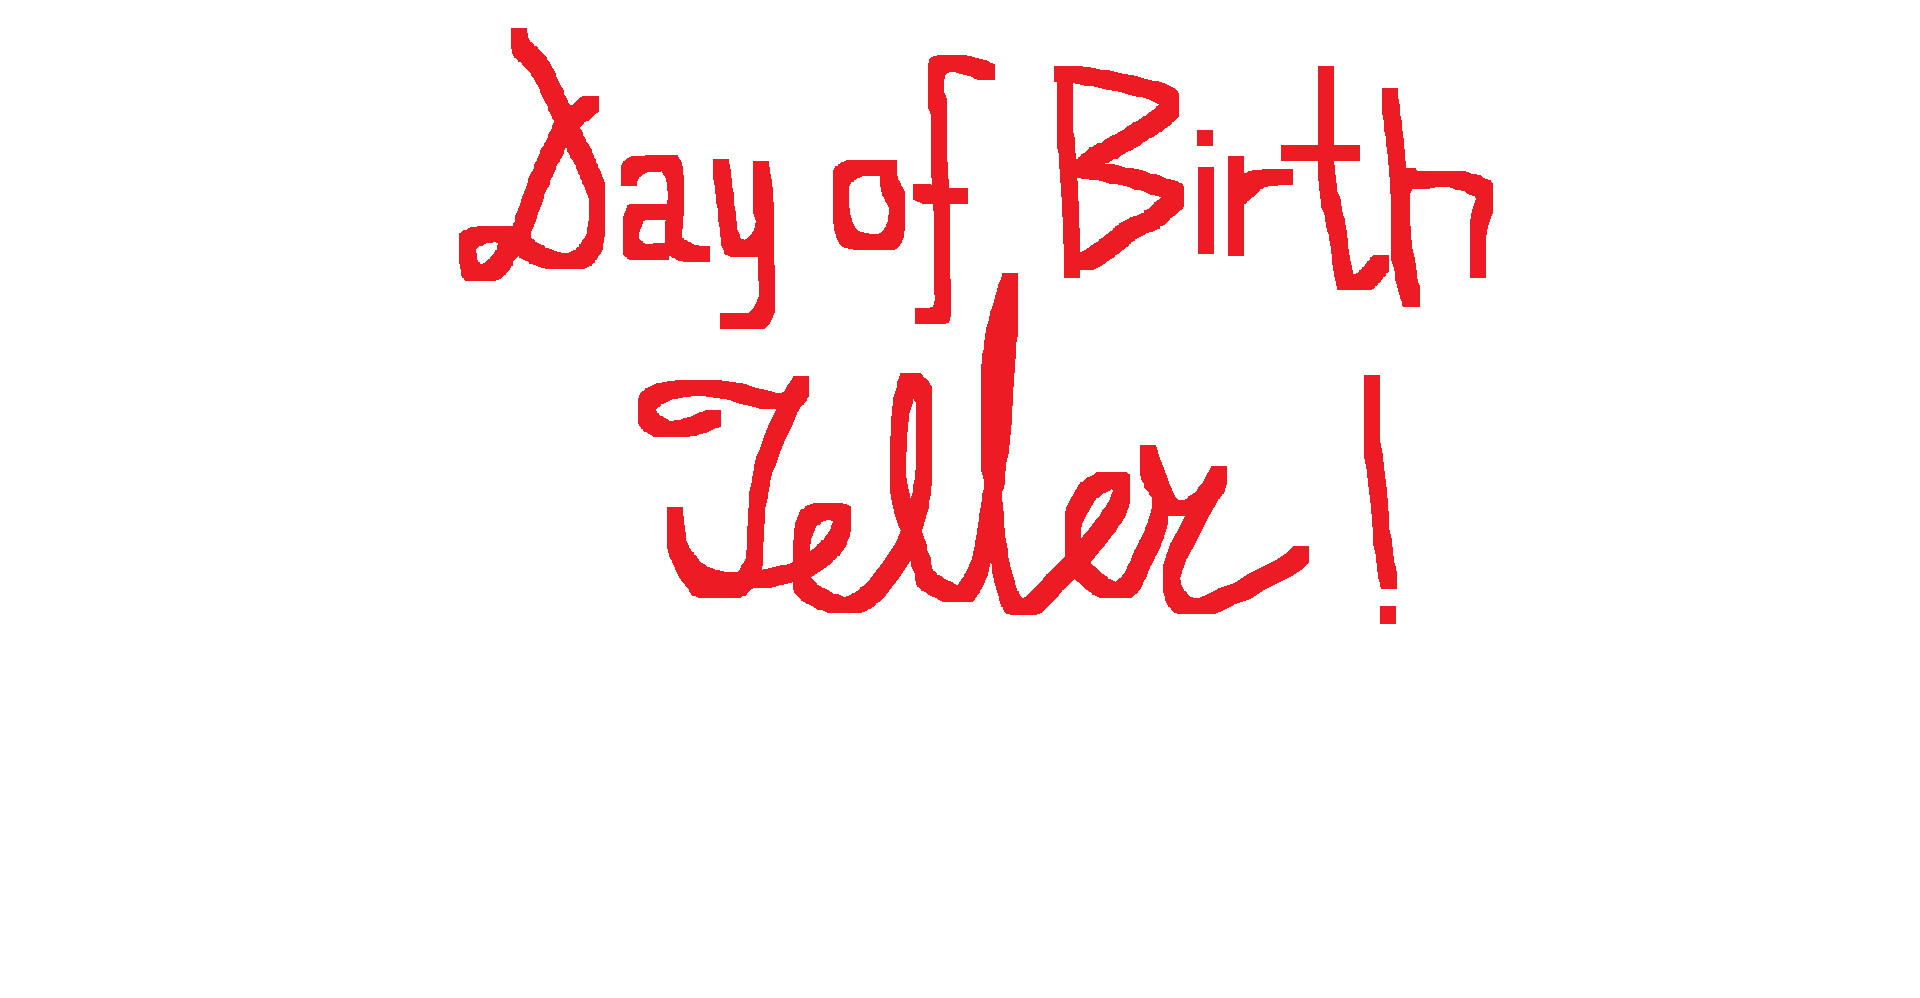 Day Of Birth Teller!